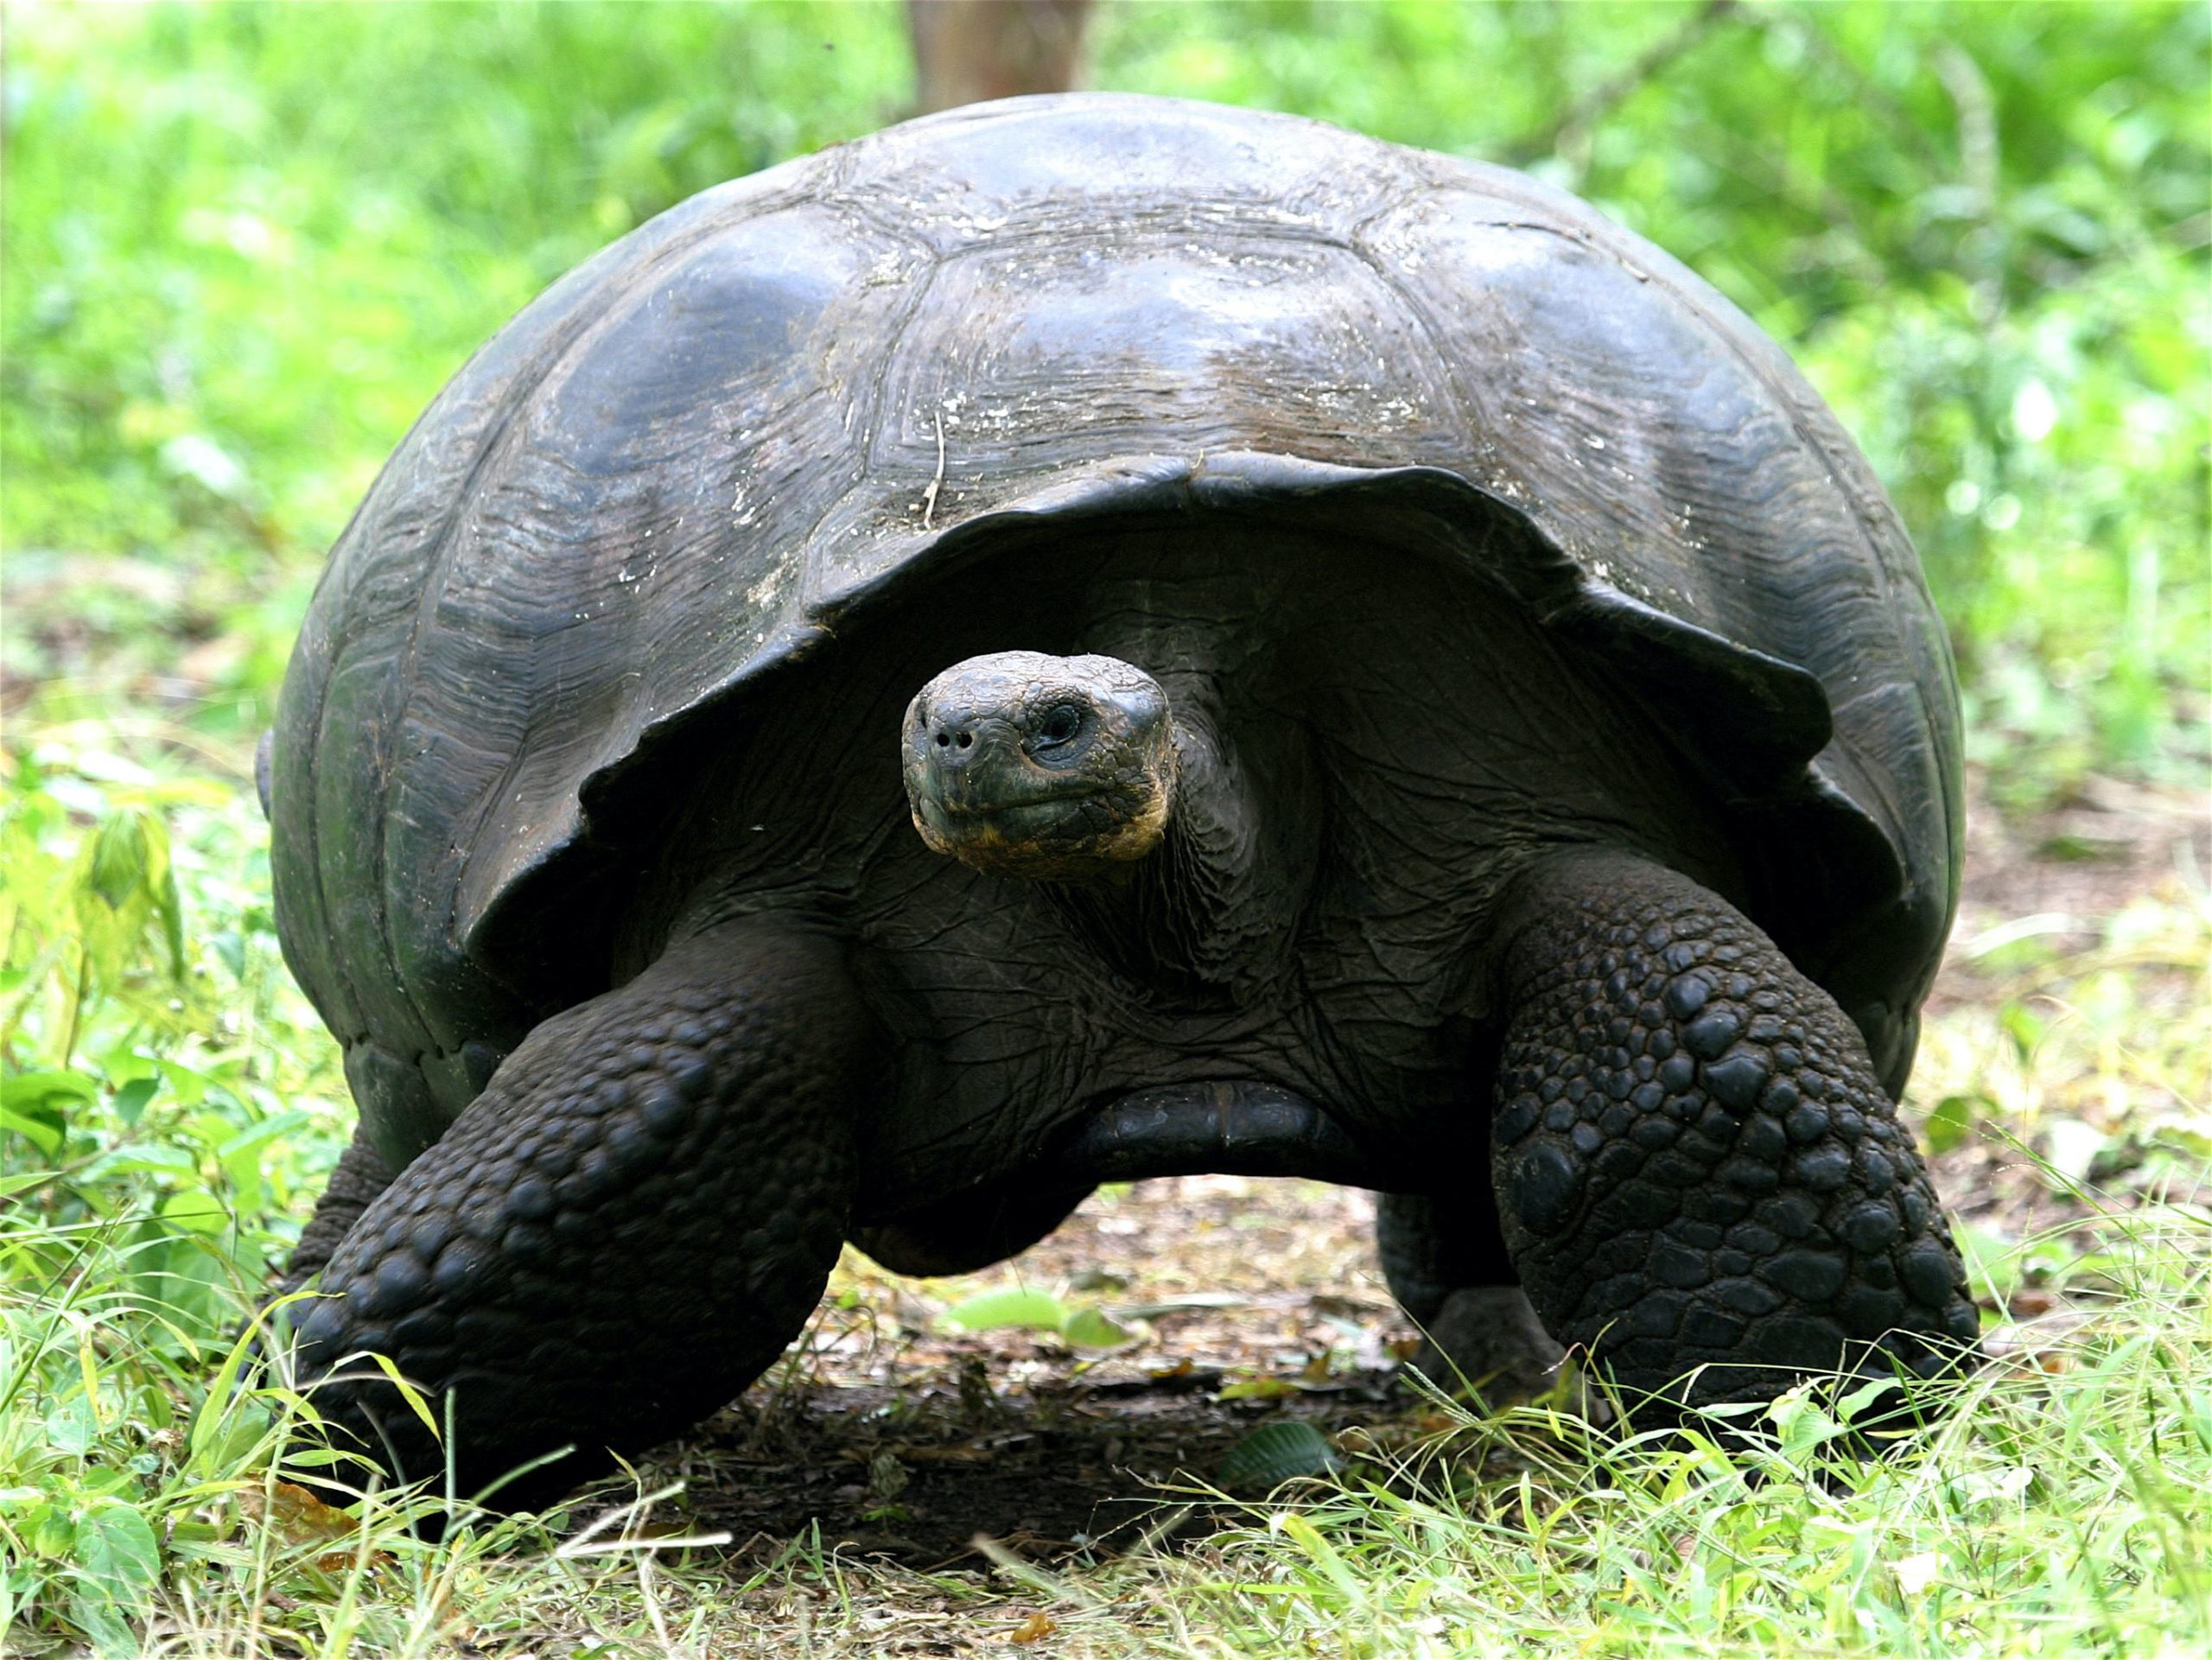 See Giant Tortoise on one of Naturalist Journeys' vaccinated cruises to the Galapagos Islands